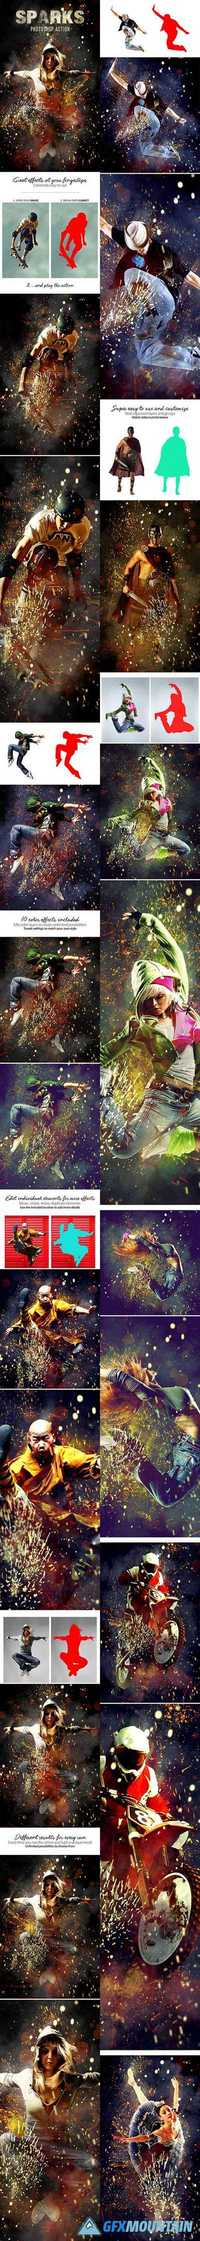 GraphicRiver - Sparks Photoshop Action - 19420143